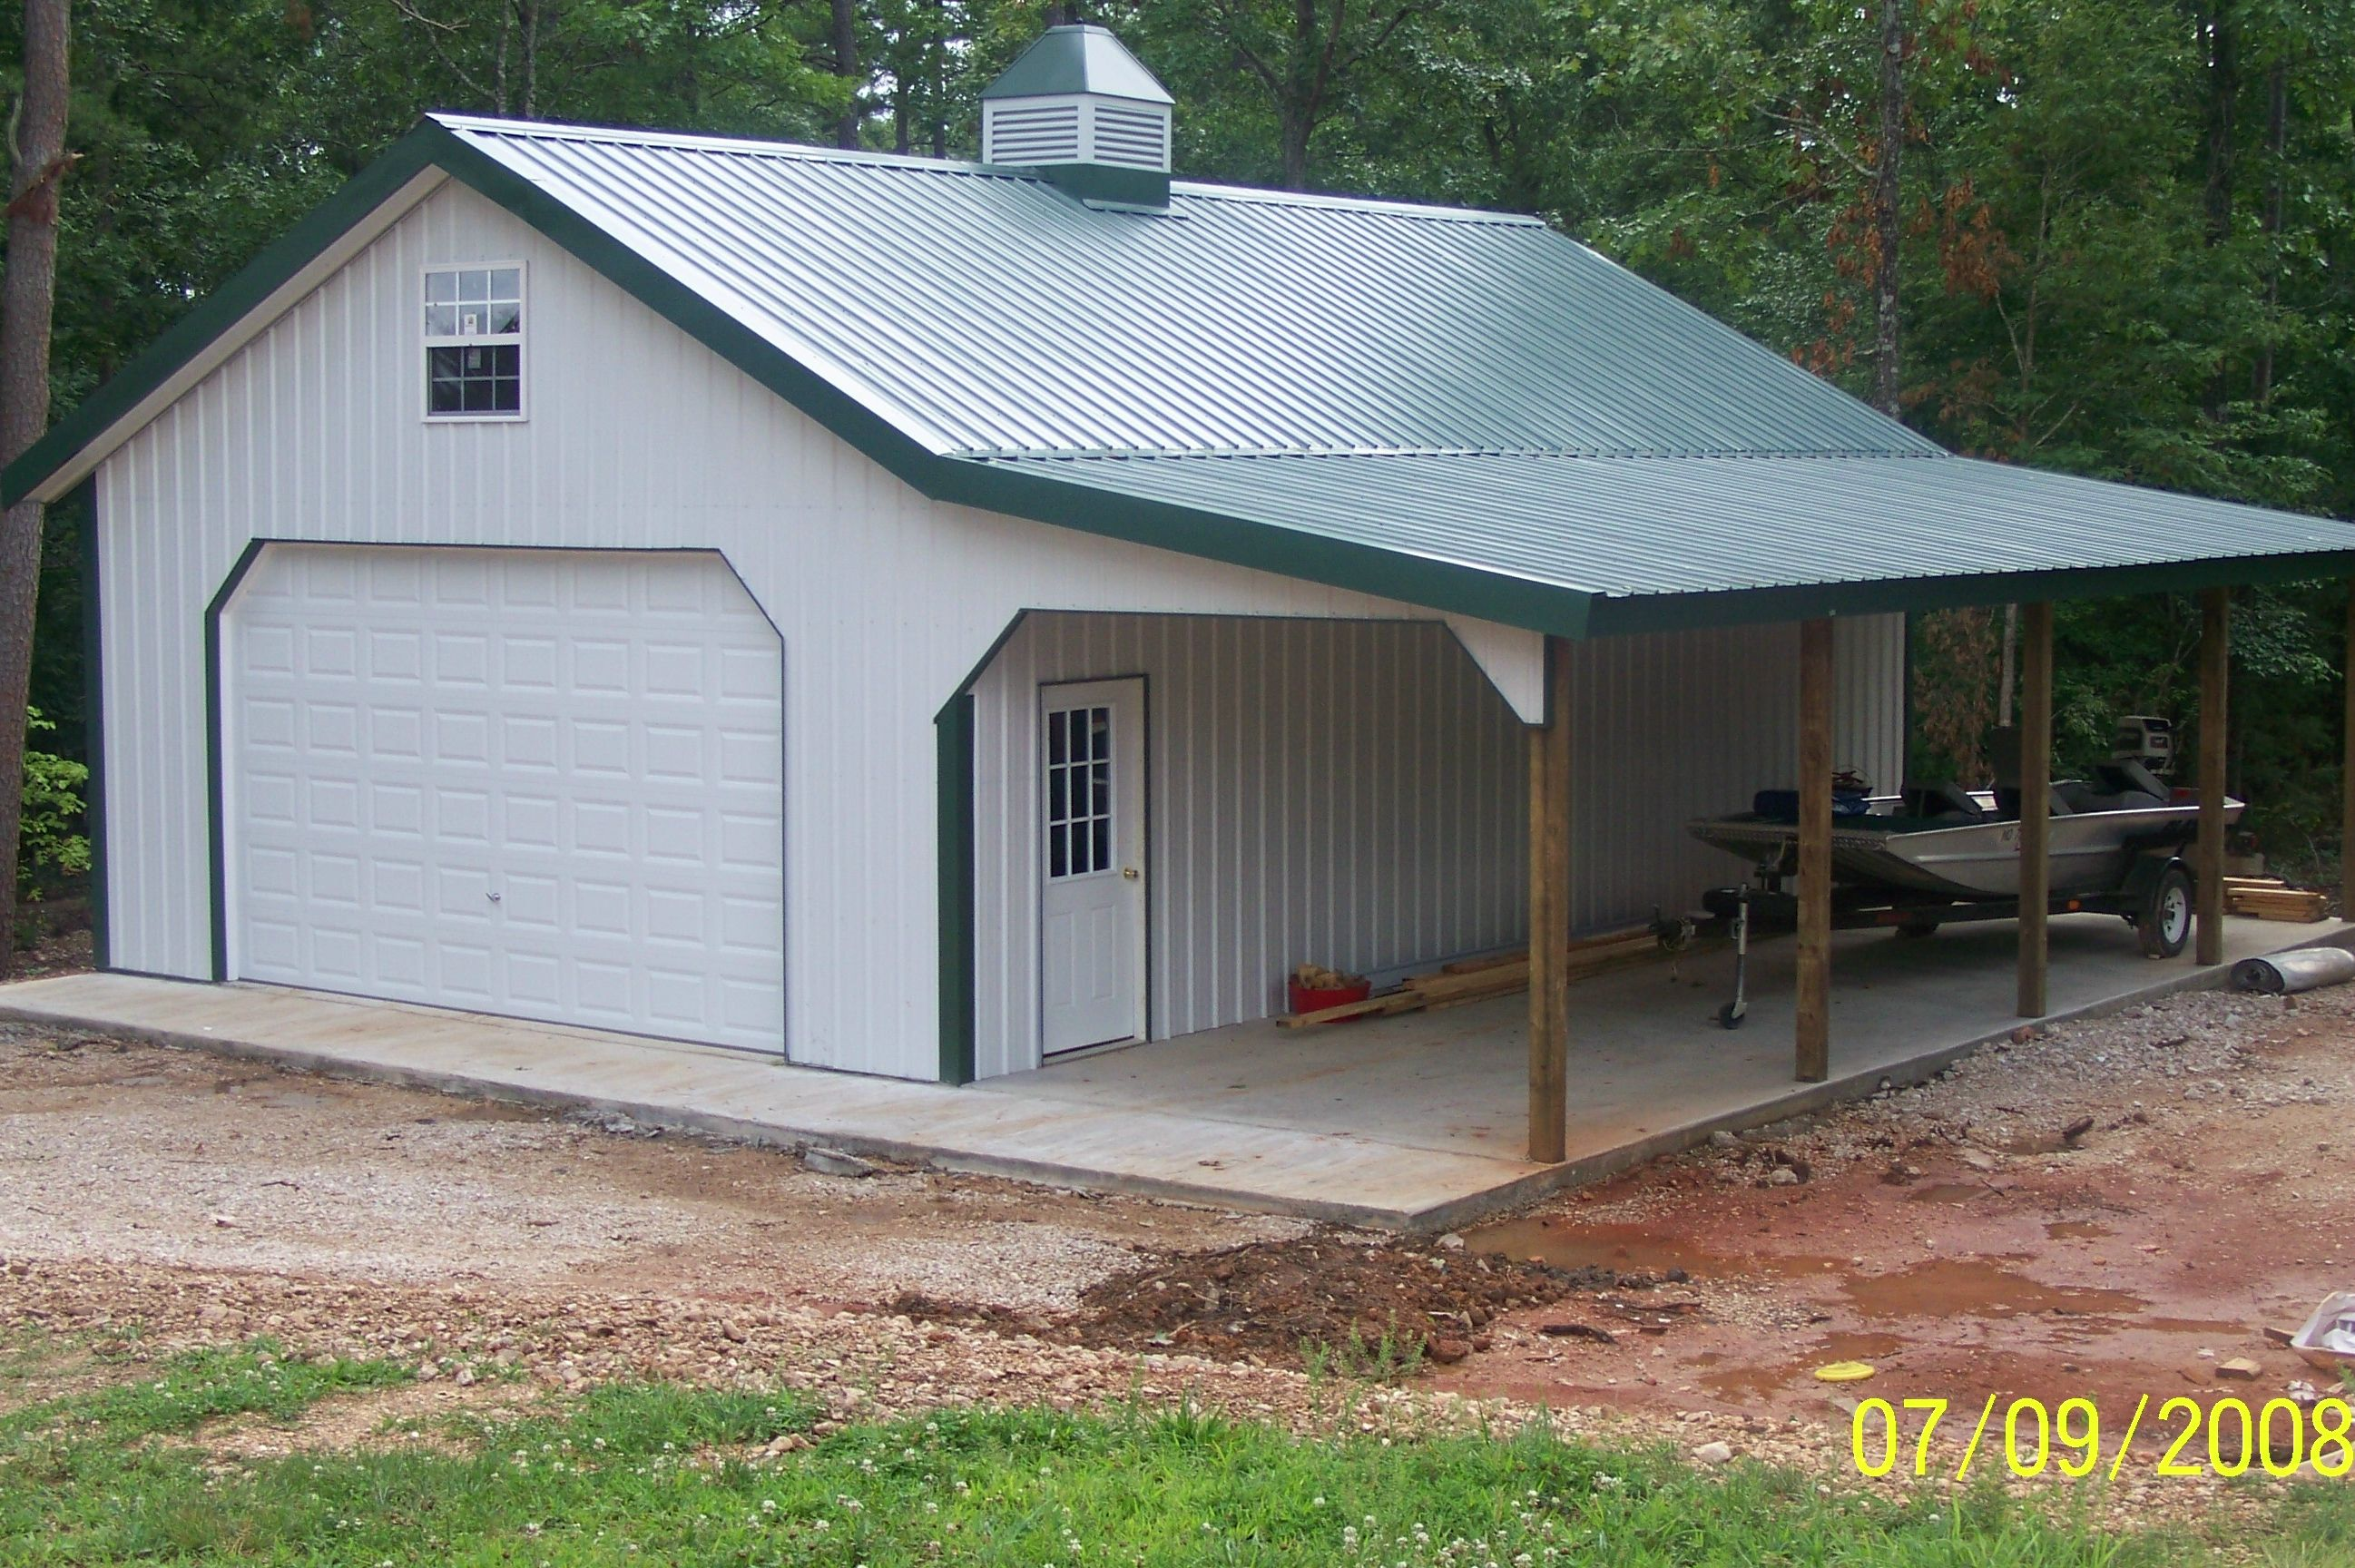 Decor tips metal roofing for pole barn houses with prefab for Pole barn garage plans